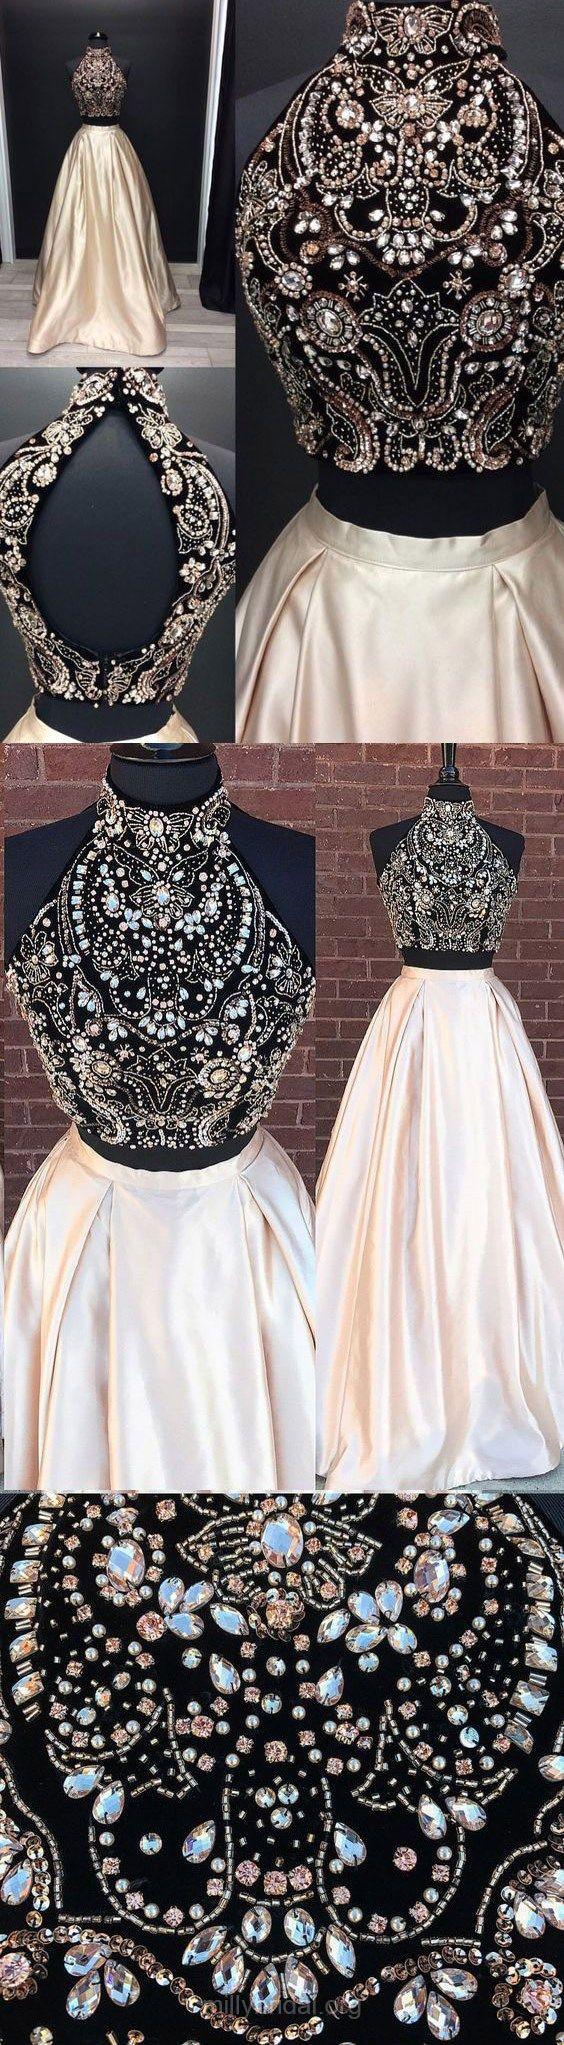 Ball Gown Prom Dresses, Two Piece Prom Dresses, Long Prom Dresses, 2018 Prom Dresses For Teens, High Neck Prom Dresses Satin, Modest Prom Dresses Beading #promgowns